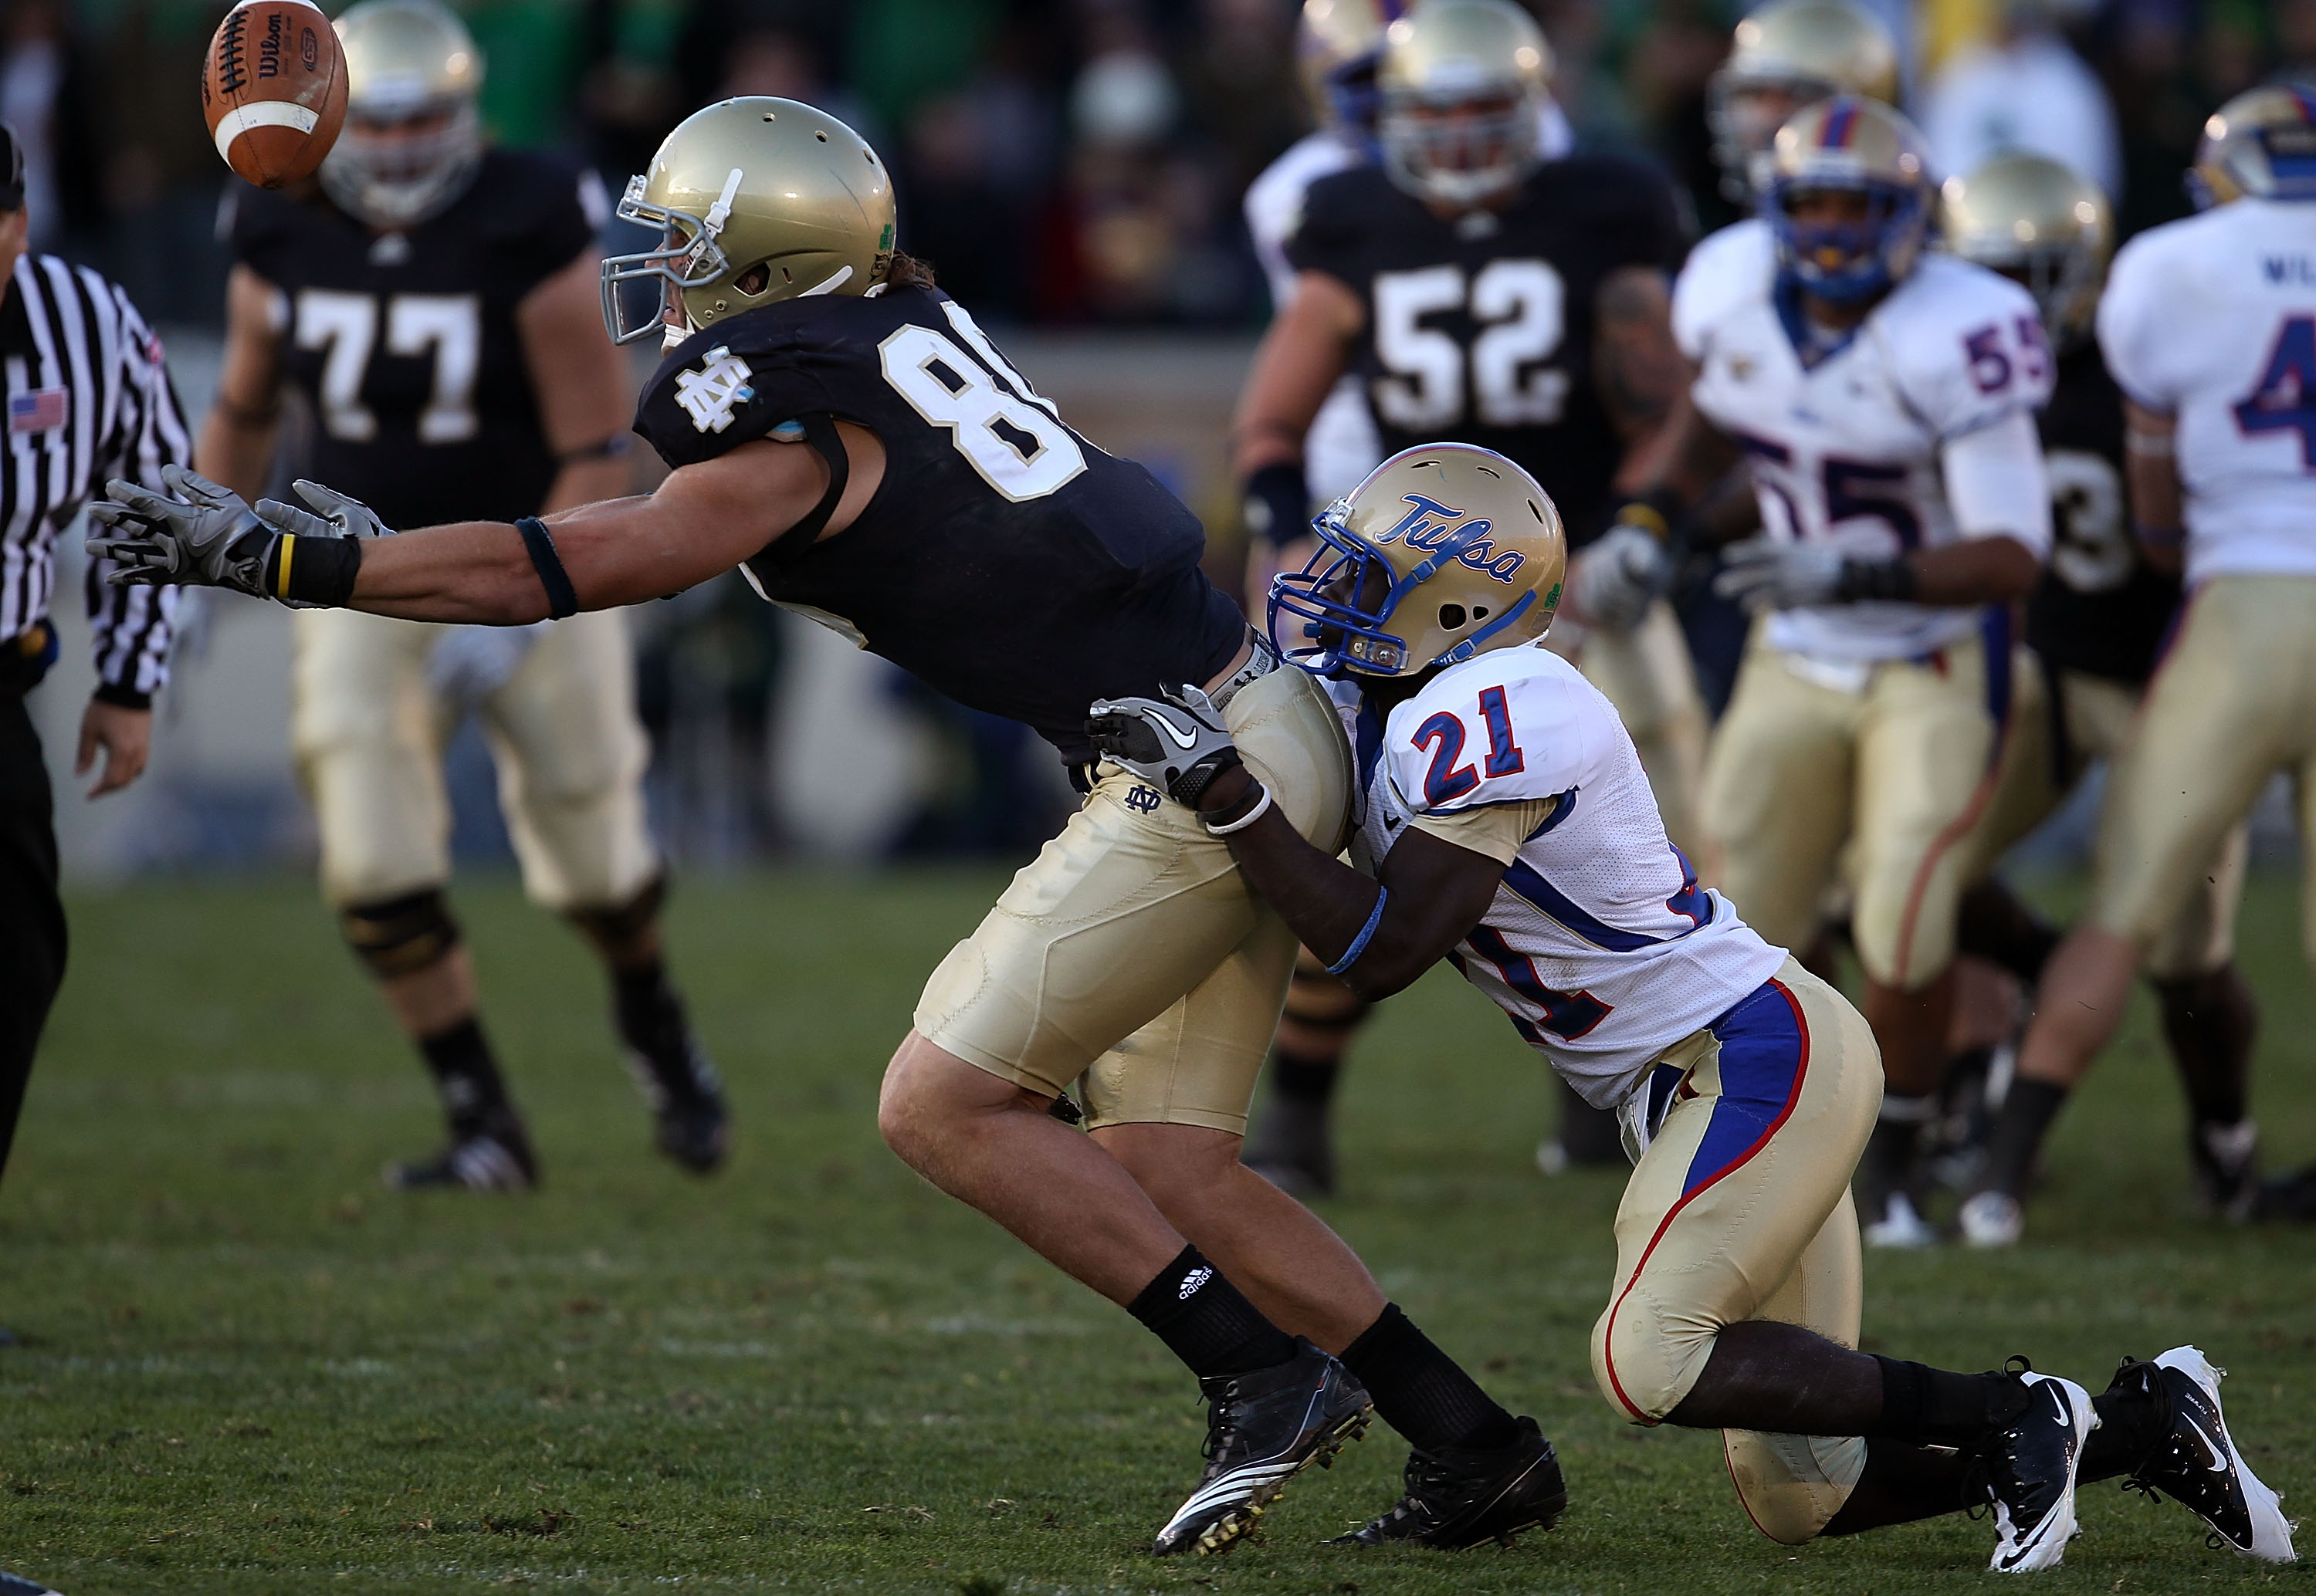 SOUTH BEND, IN - OCTOBER 30: Tyler Eifert #80 of the Notre Dame Fighting Irish drops a pass as he is hit by John Flanders #21 of the Tulsa Golden Hurricane at Notre Dame Stadium on October 30, 2010 in South Bend, Indiana. Tulsa defeated Notre Dame 28-27.